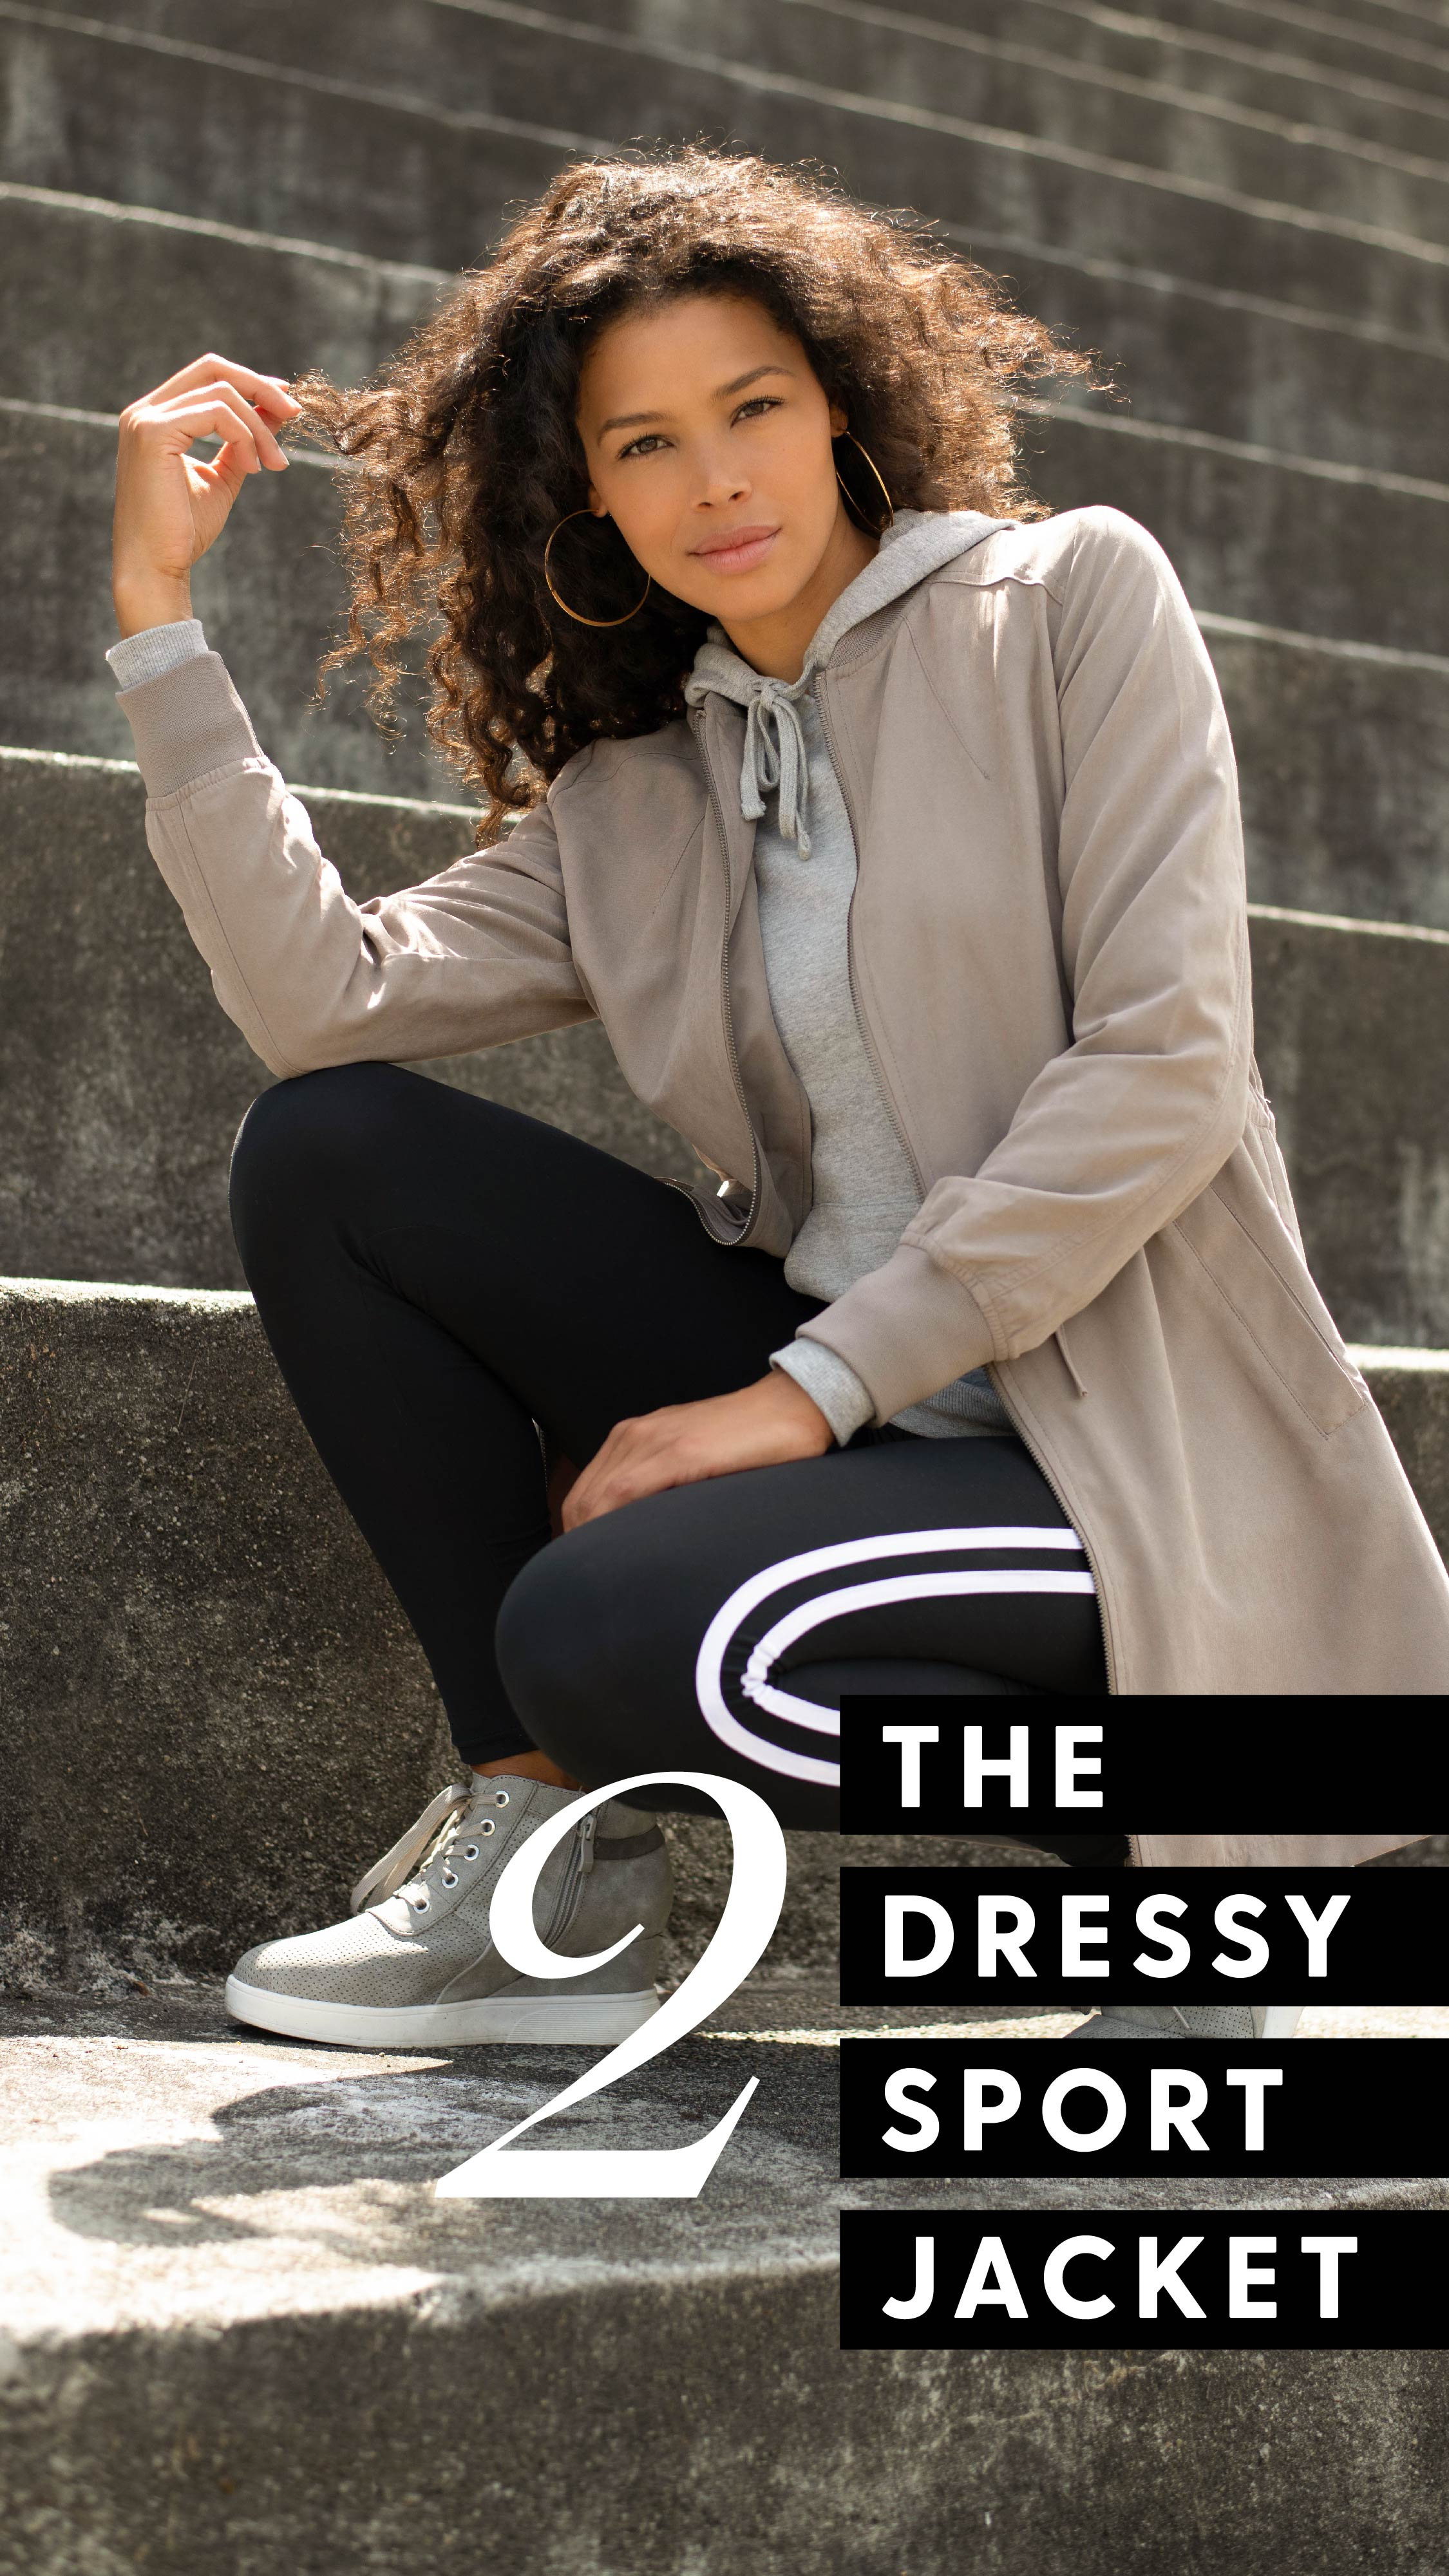 Style 2 - The dressy sporty jacket. Picture of women wearing a light grey/tan jacket layered with a grey hoodie.